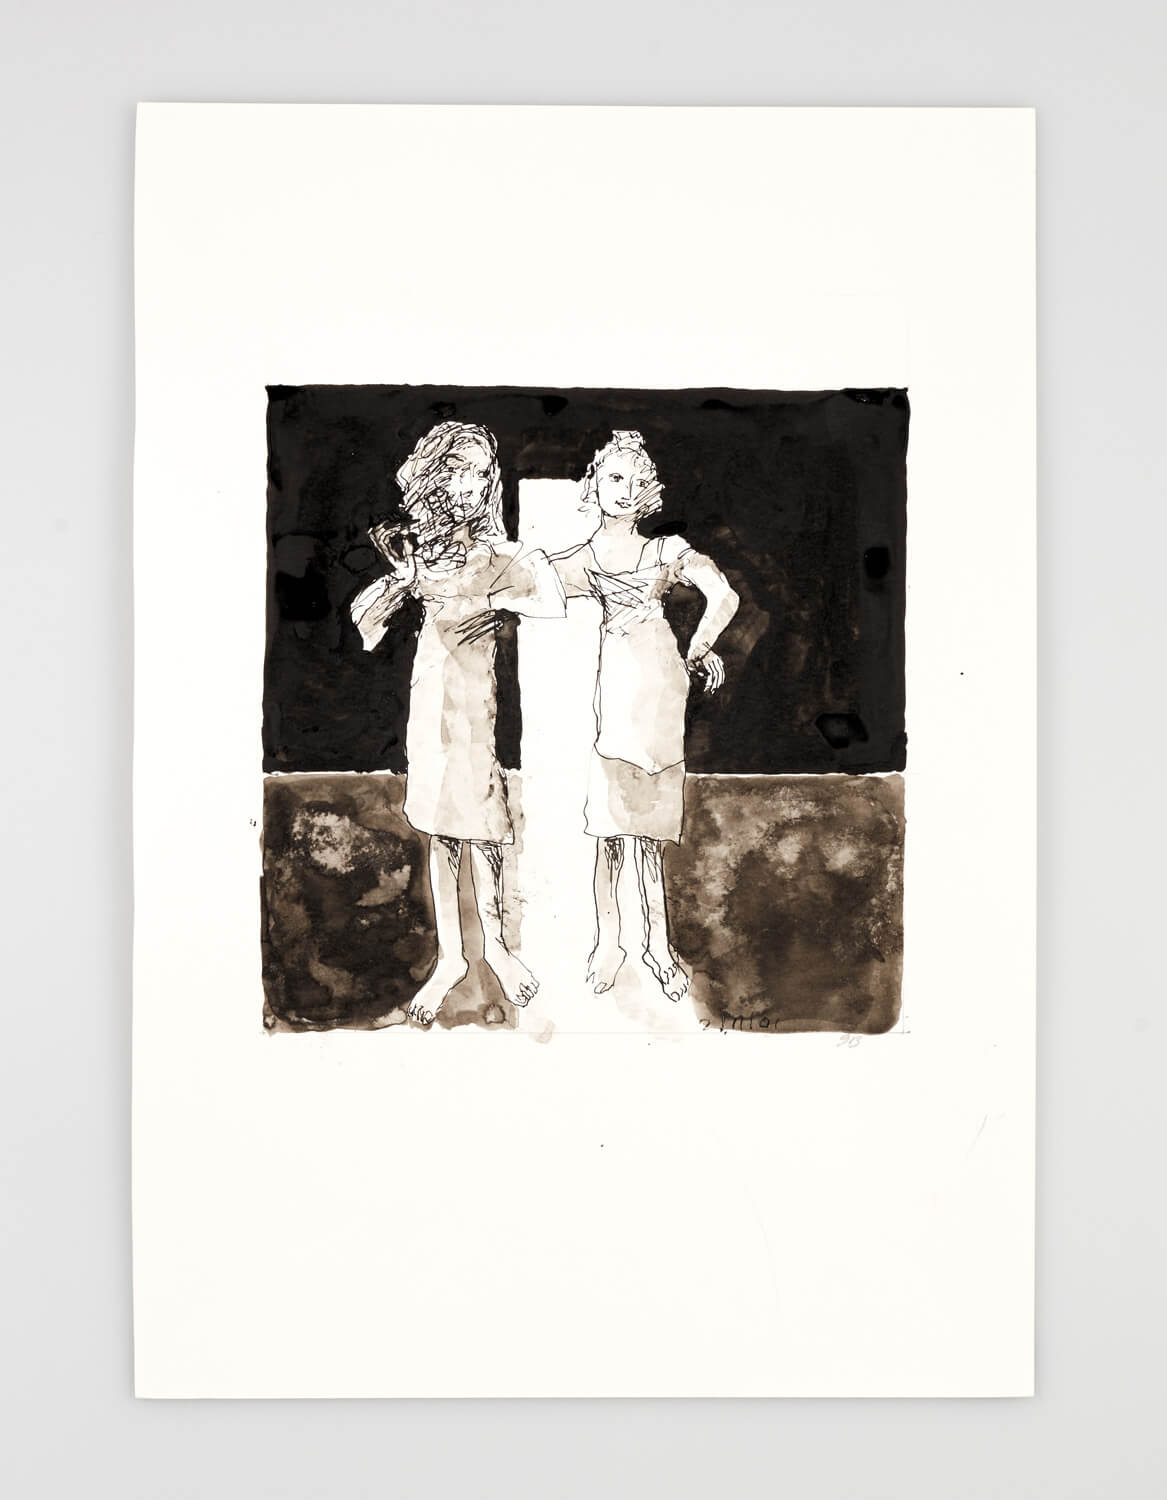 JB020 - Two Women - Being dressed - 2001 - 50 x 35 cm - Indian ink and wash on paper